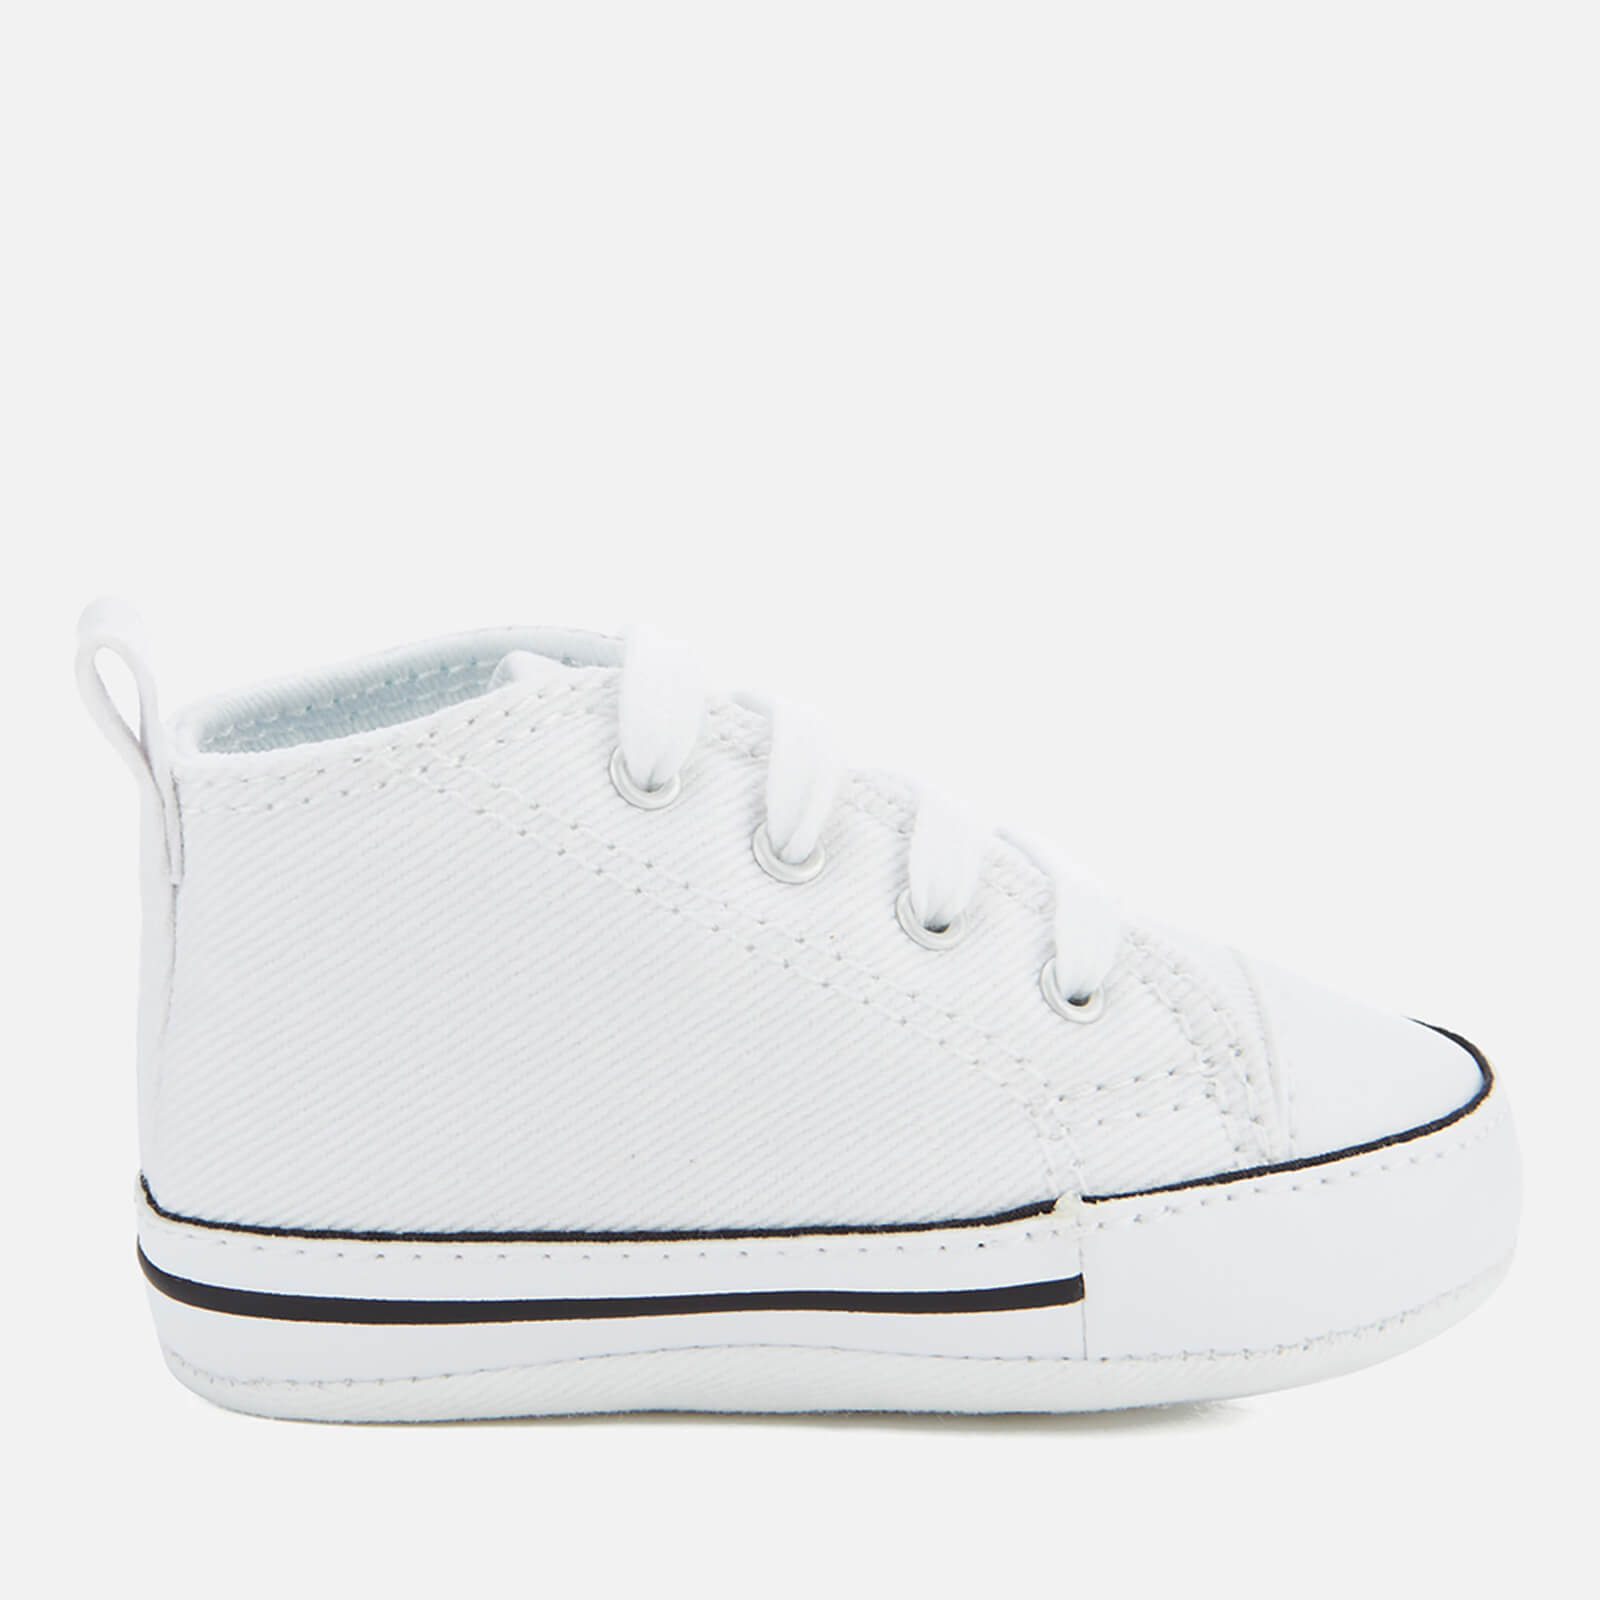 614dd258e6 Converse Babies Chuck Taylor First Star Hi-Top Trainers - White ...